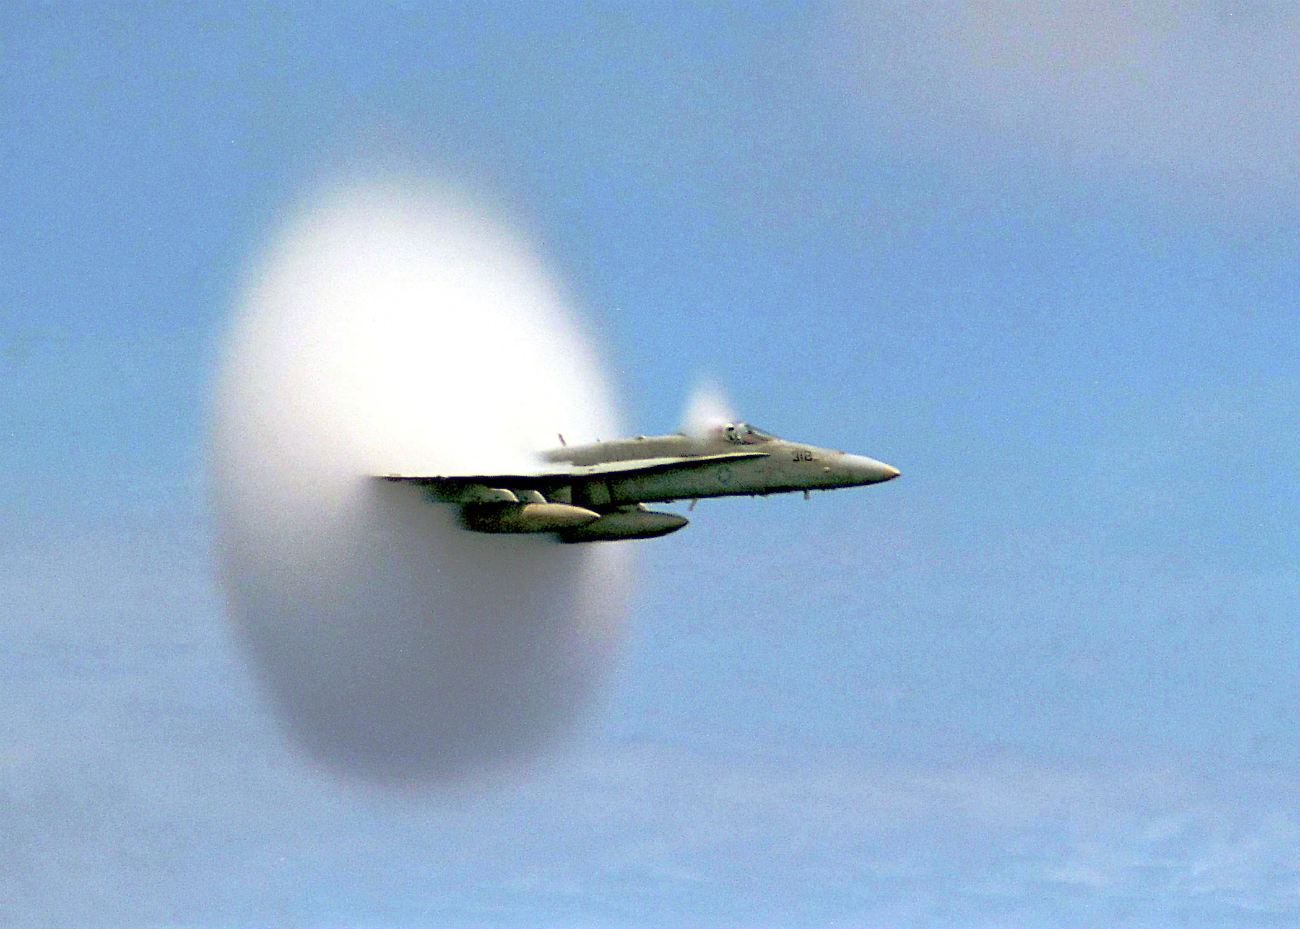 FA-18C Hornet breaking the sound barrier over the Pacific Ocean